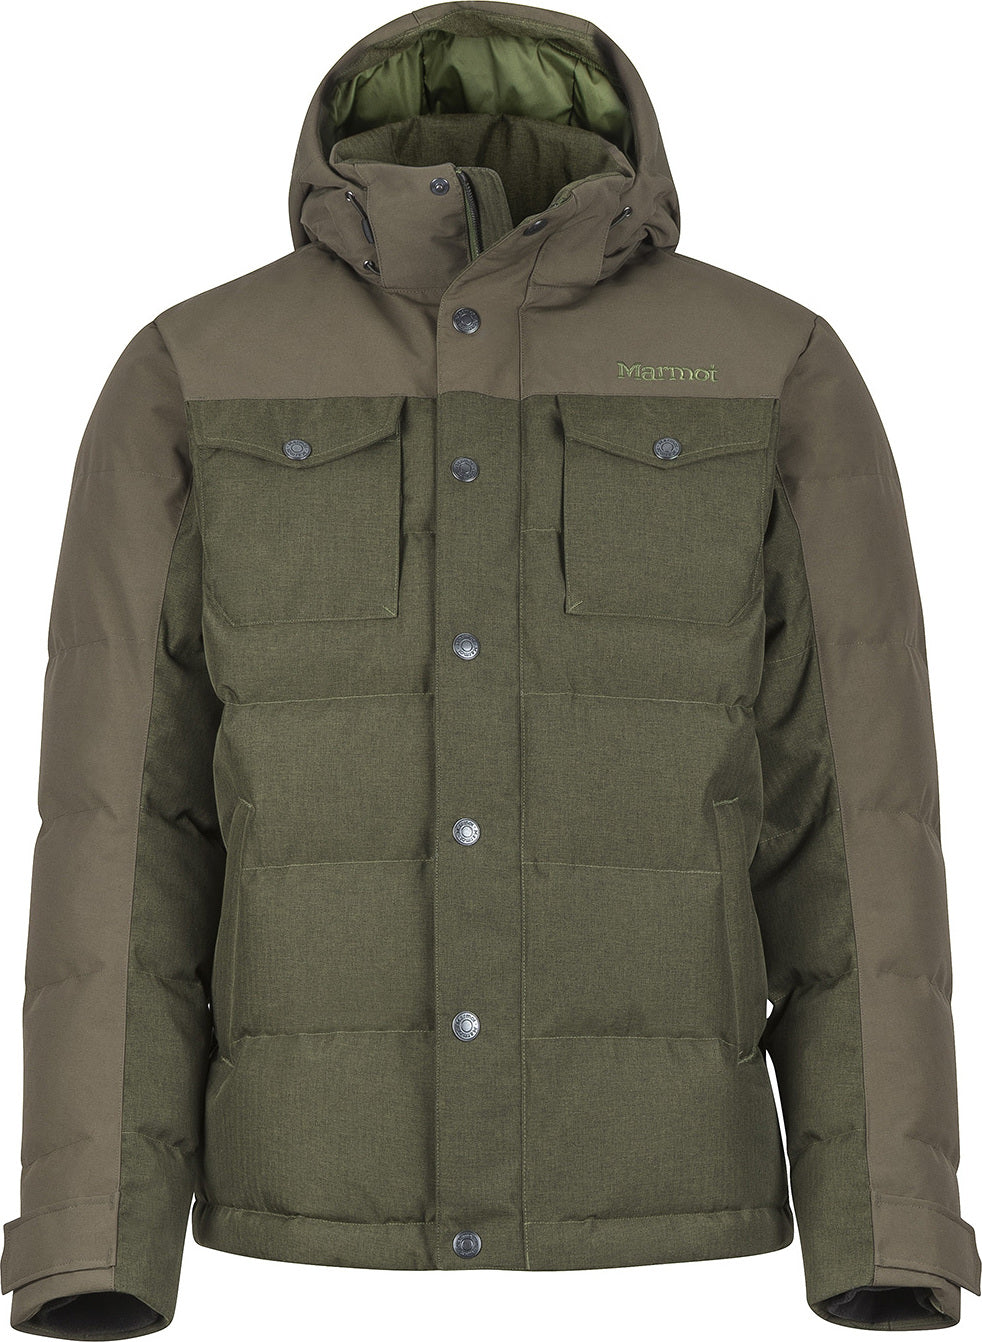 77ff26777 Men's Fordham Jacket